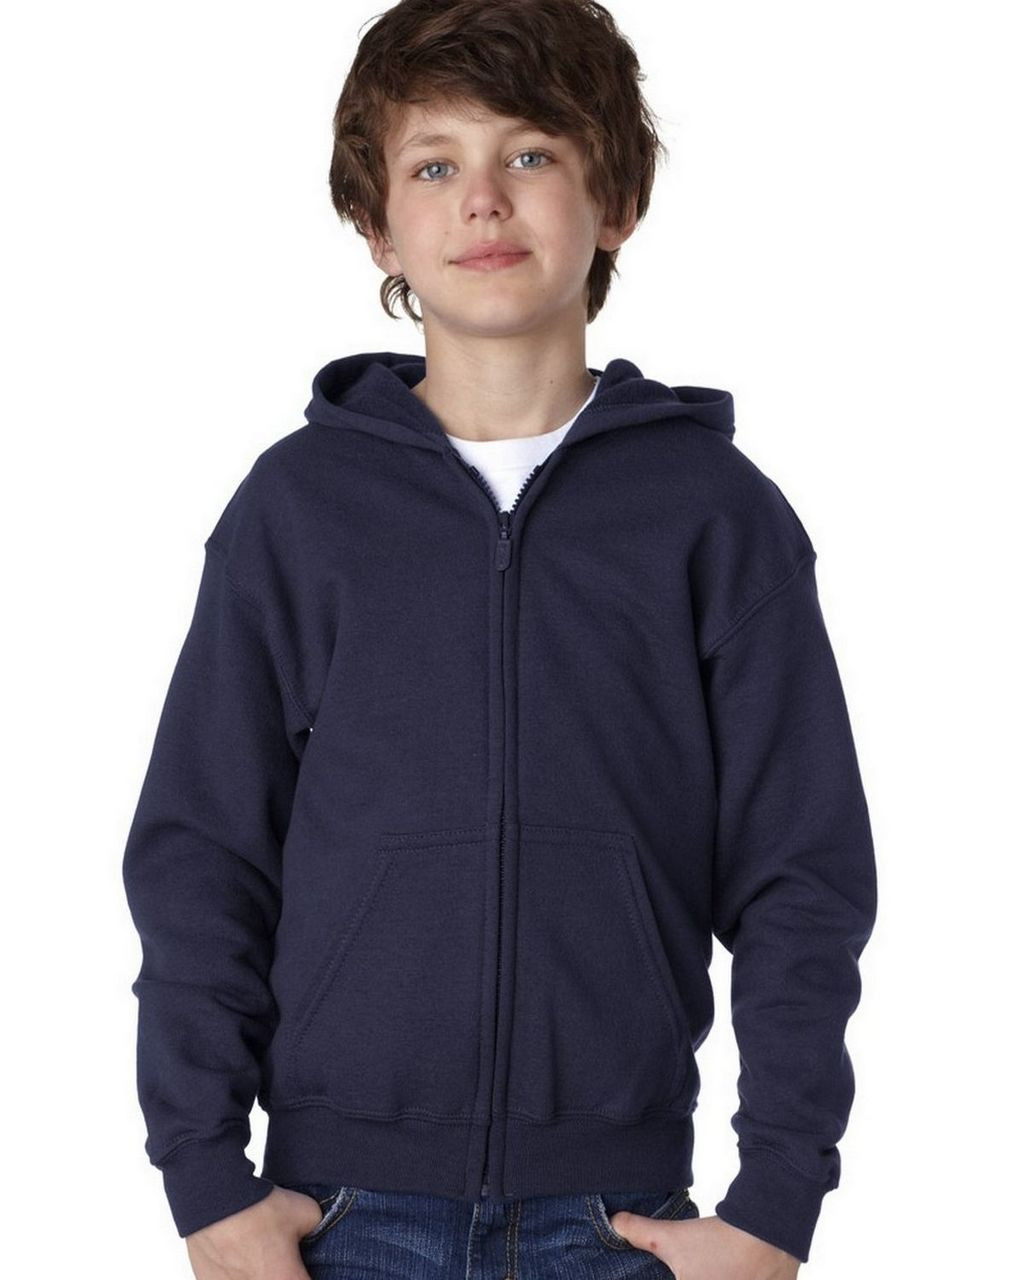 Navy - 18600B Gildan Youth Full Zip Hoodie | T-shirt.ca